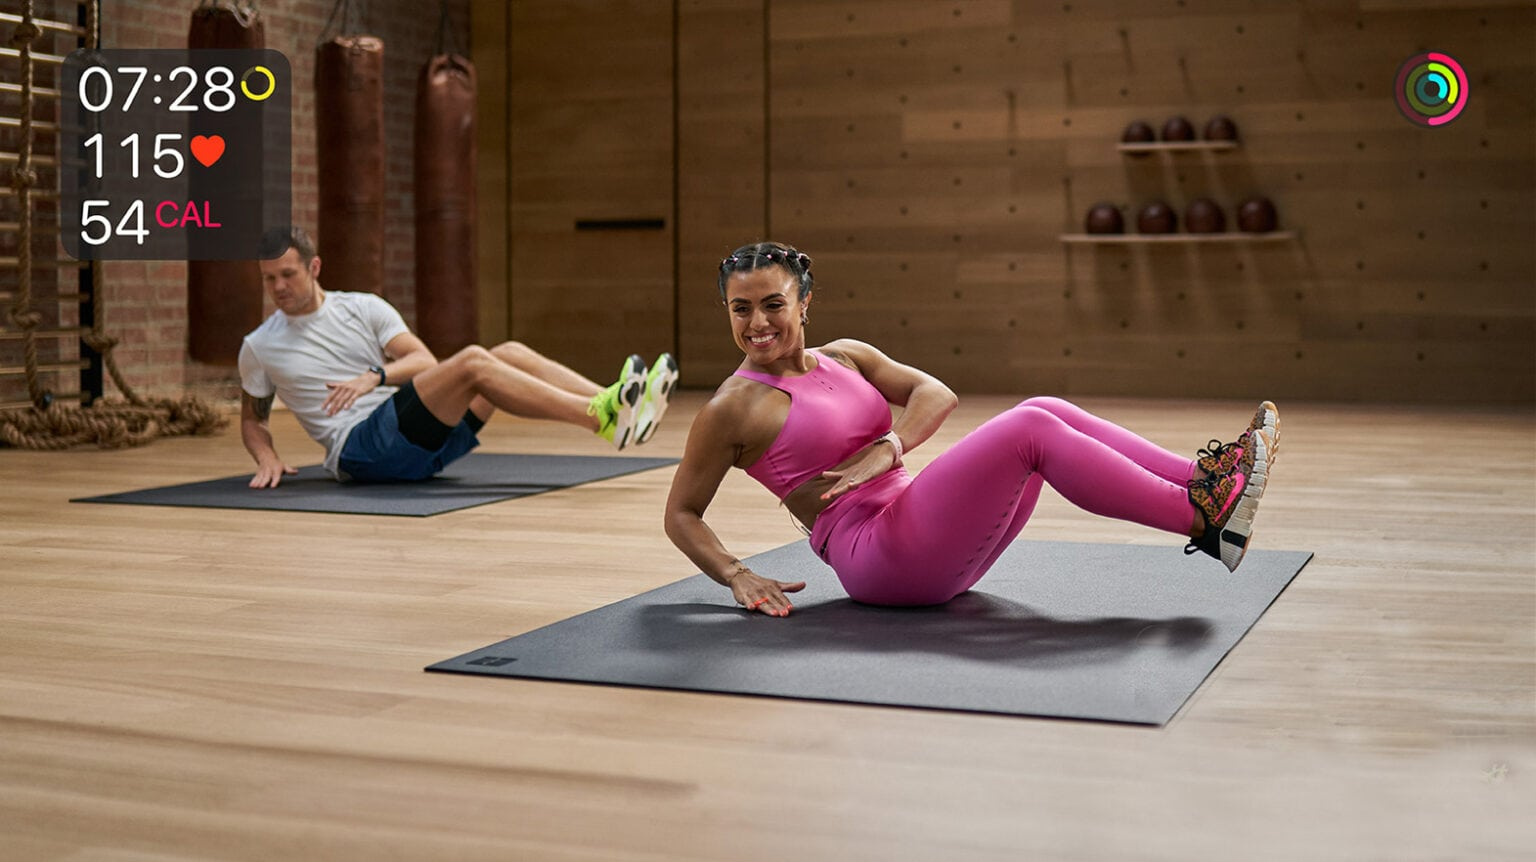 Can the competition keep up with Apple Fitness+?